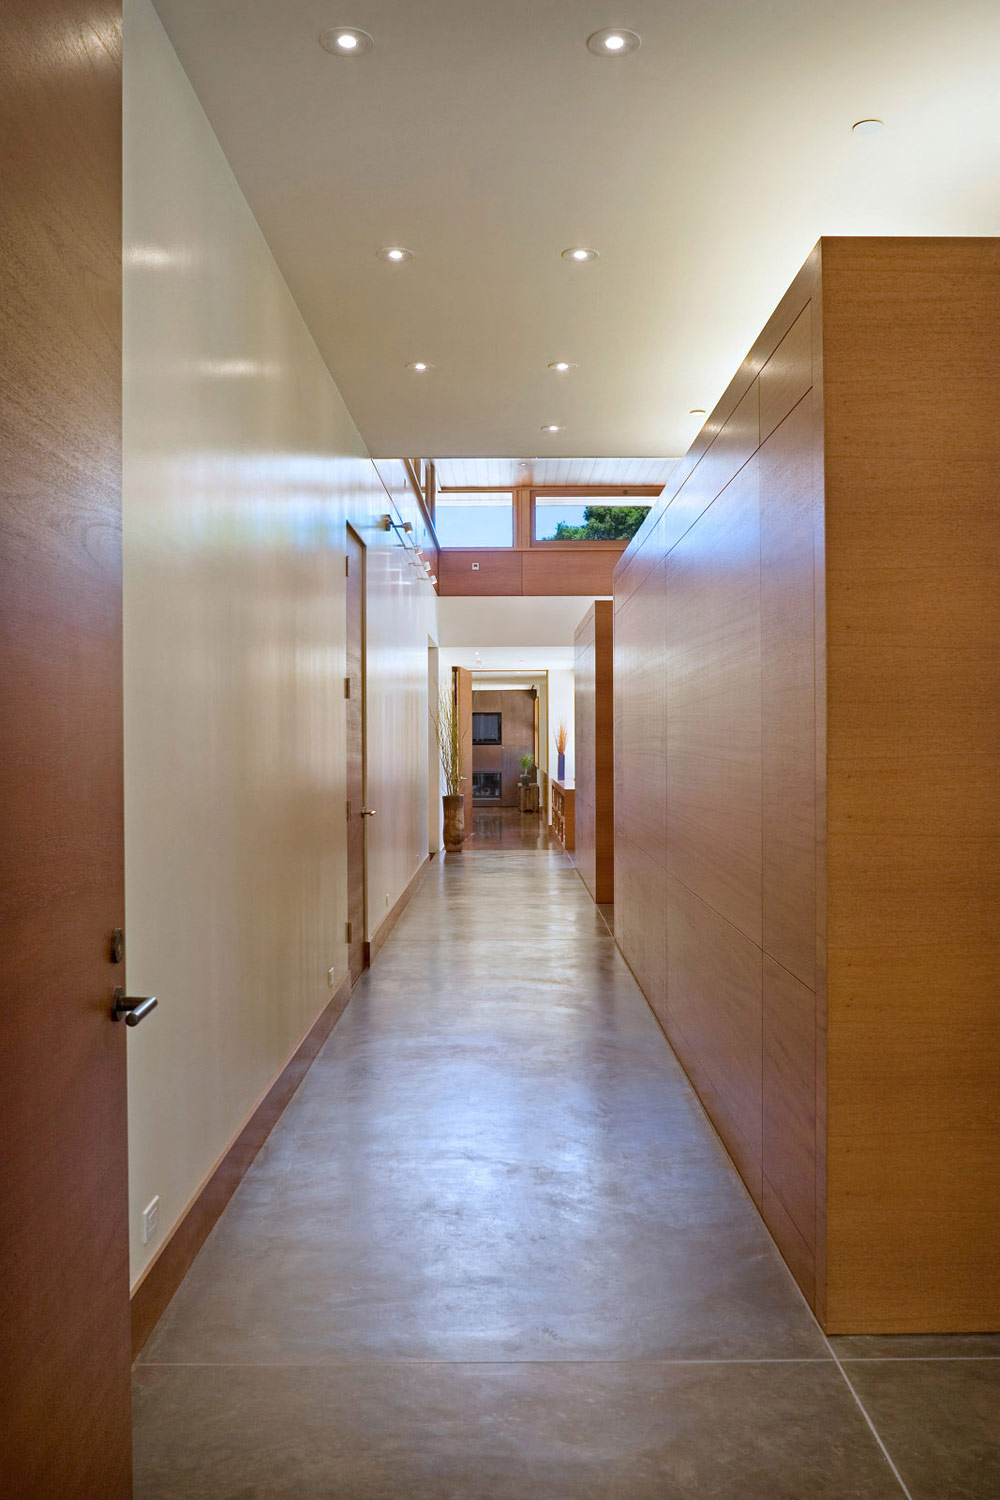 Hallway, Wheeler Residence in Menlo Park, California by William Duff Architects